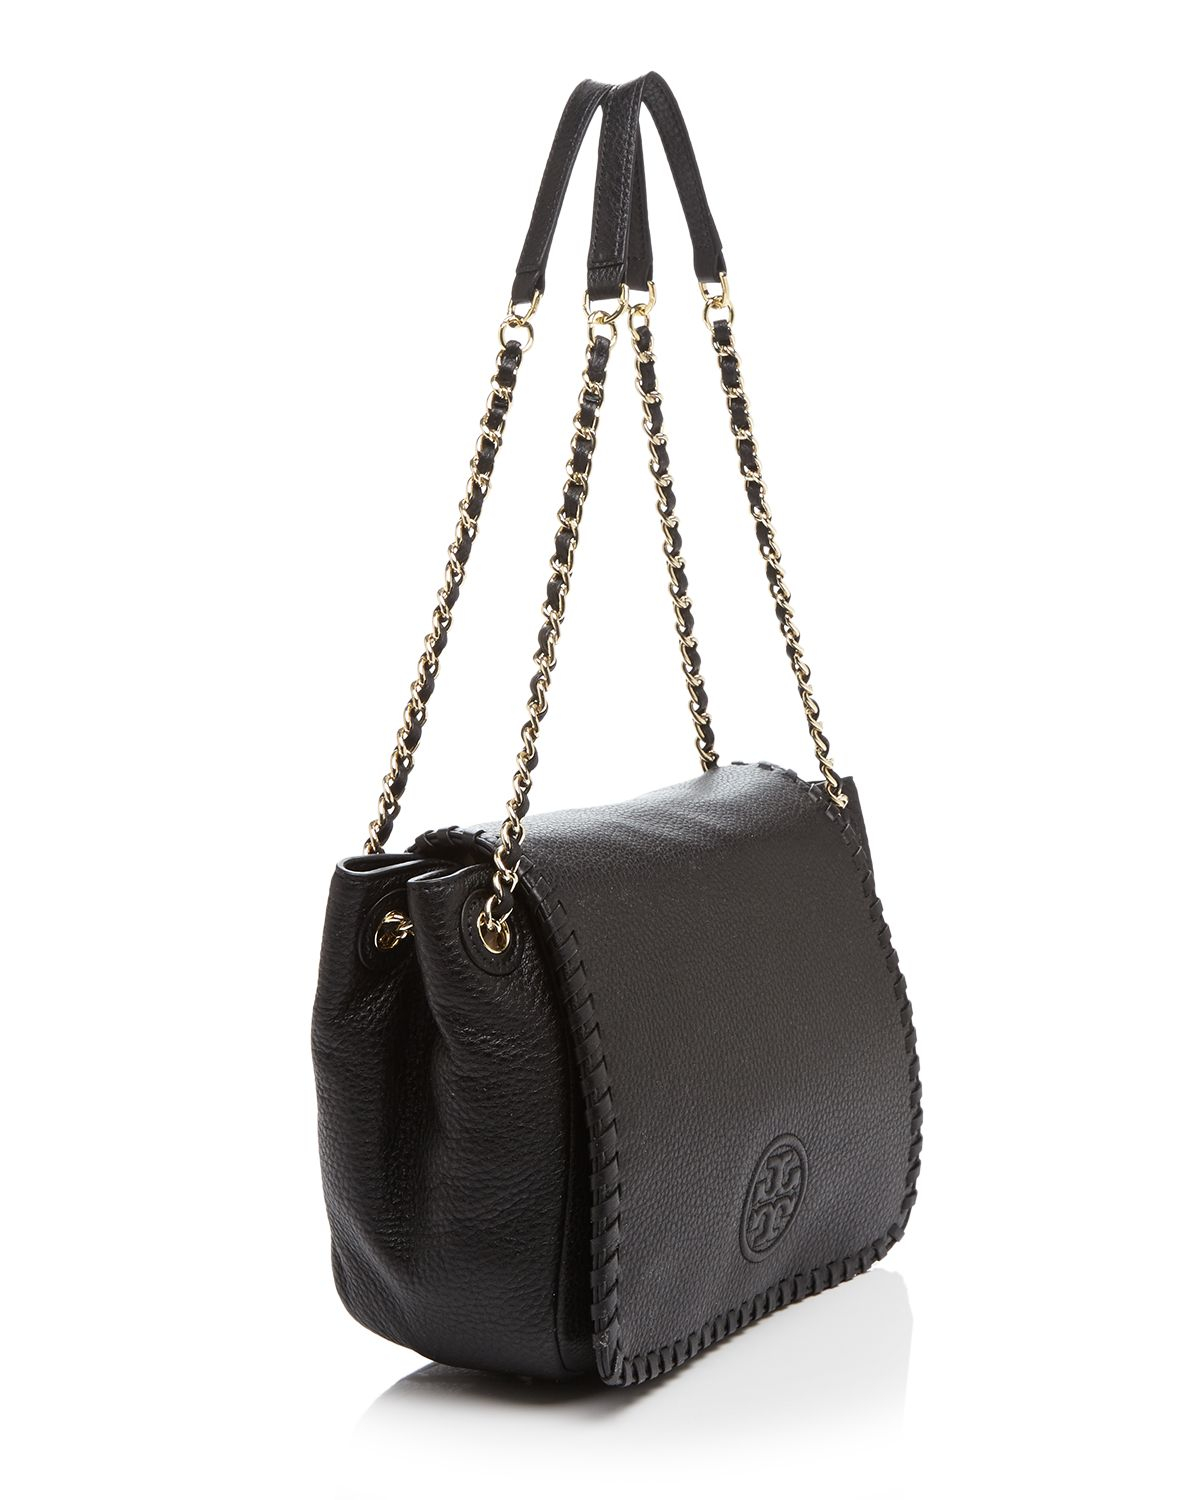 Free Shipping on many items across the worlds largest range of Tory Burch Leather Small Bags & Handbags for Women. Find the perfect Christmas gift ideas with eBay.